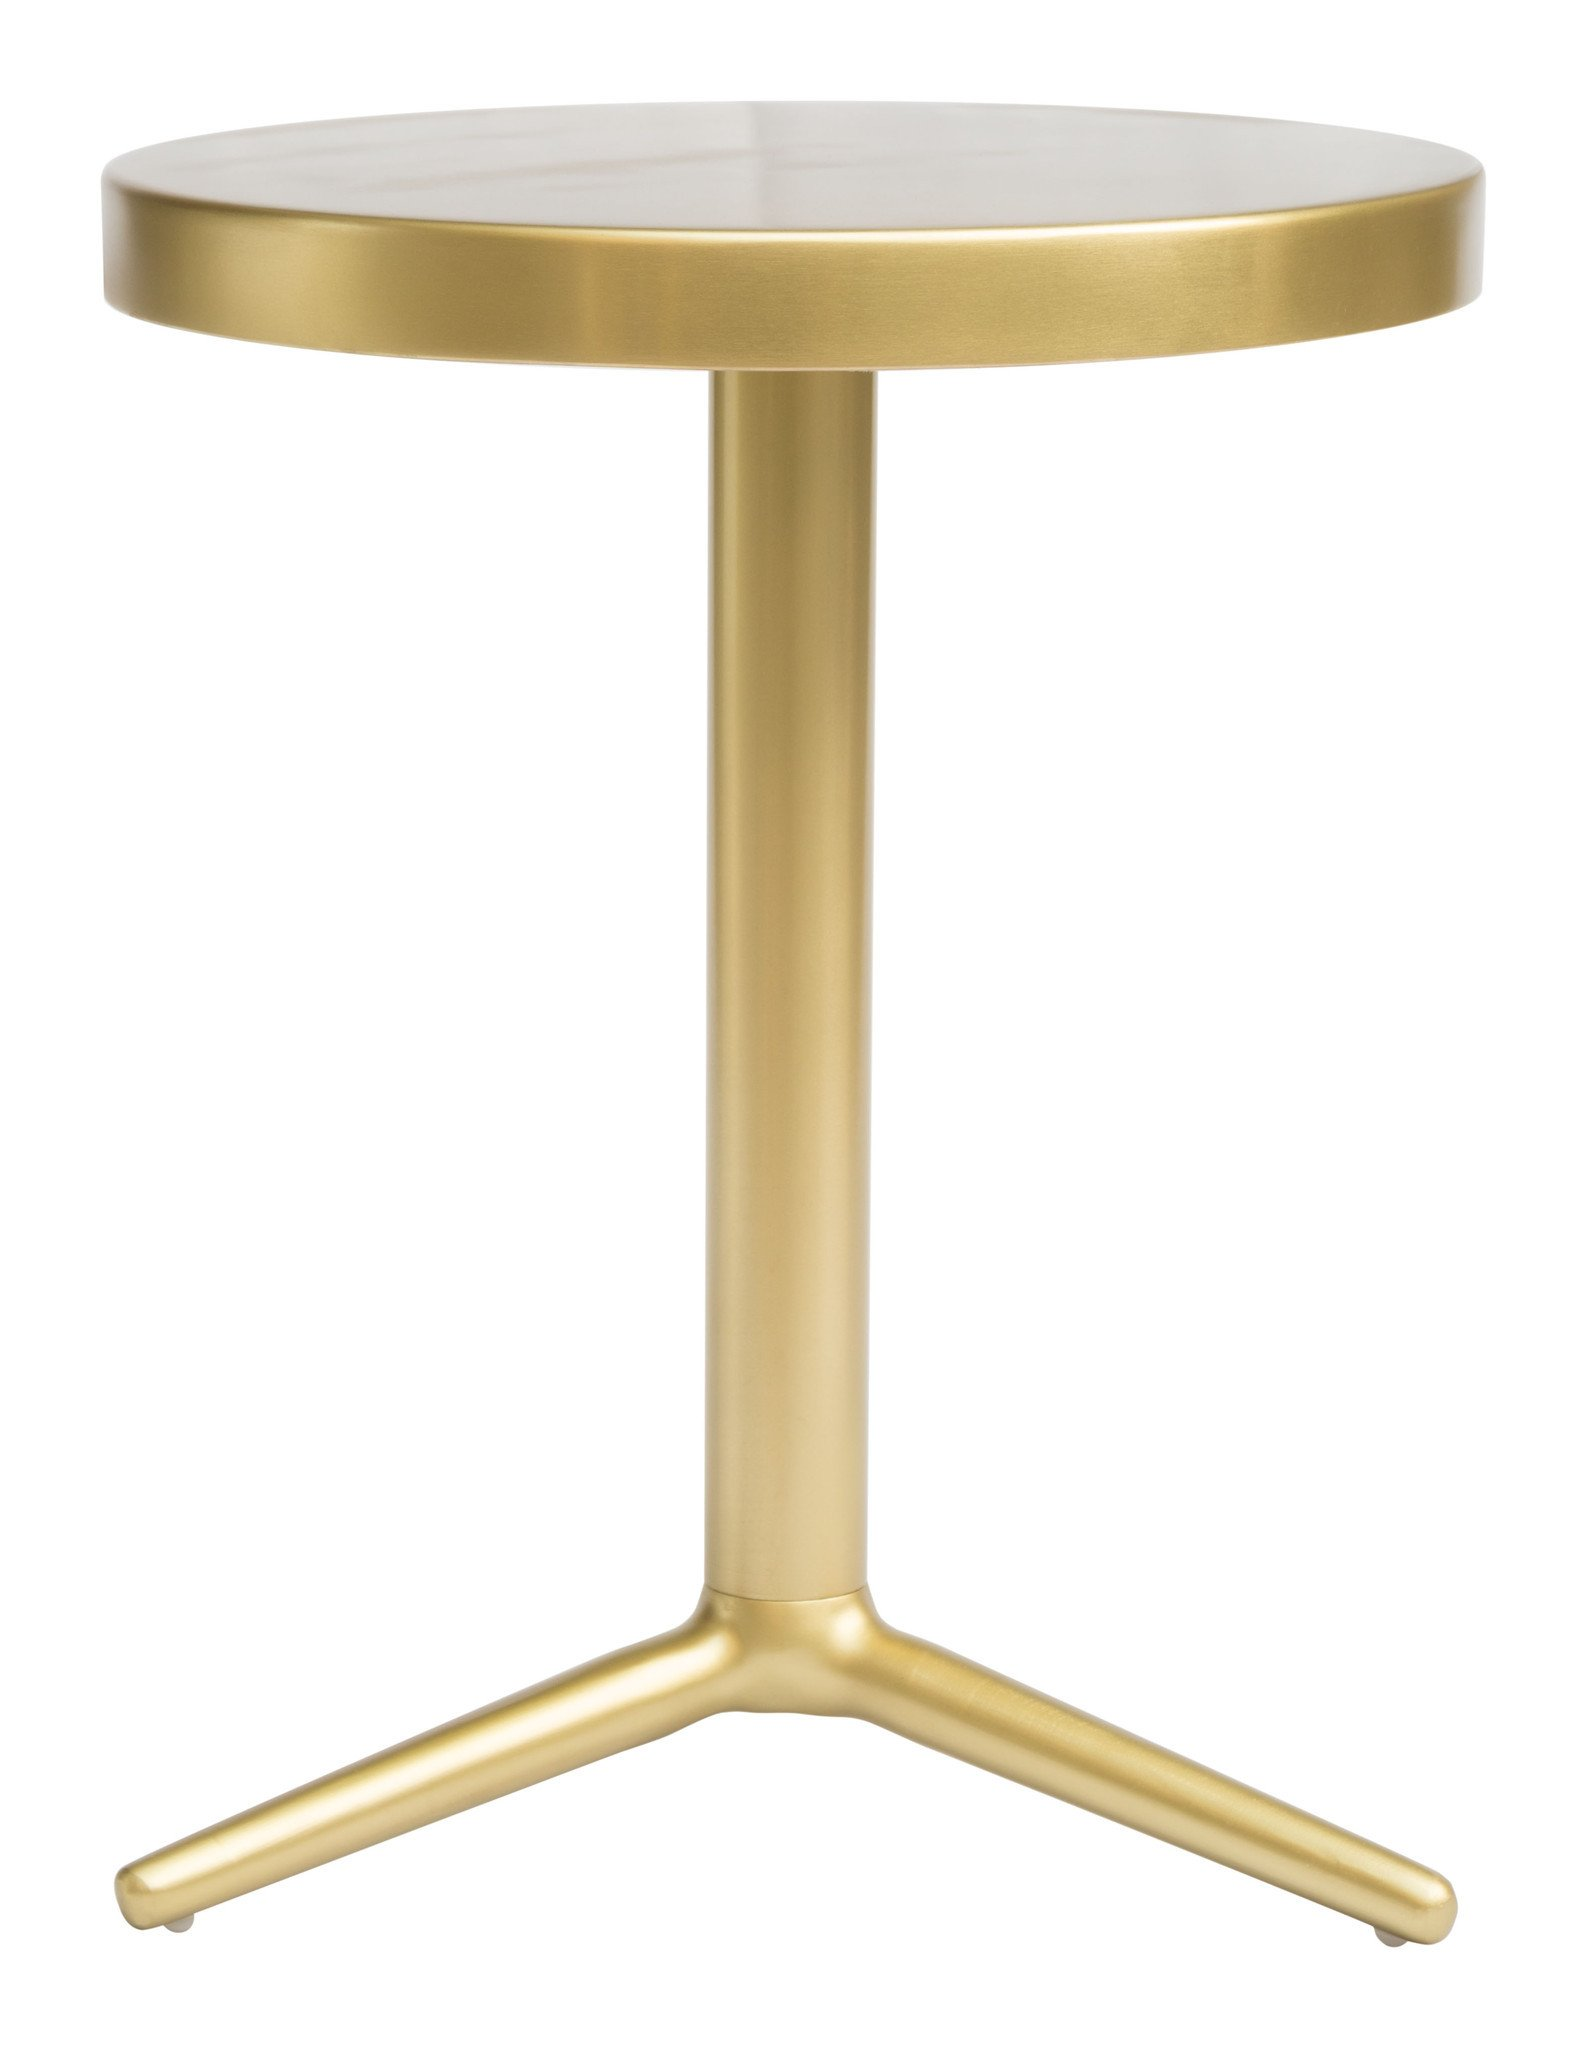 derby accent table with round top leg base brass side tables alan decor black bar height very narrow hall espresso nightstand fretwork coffee utility furniture small terence